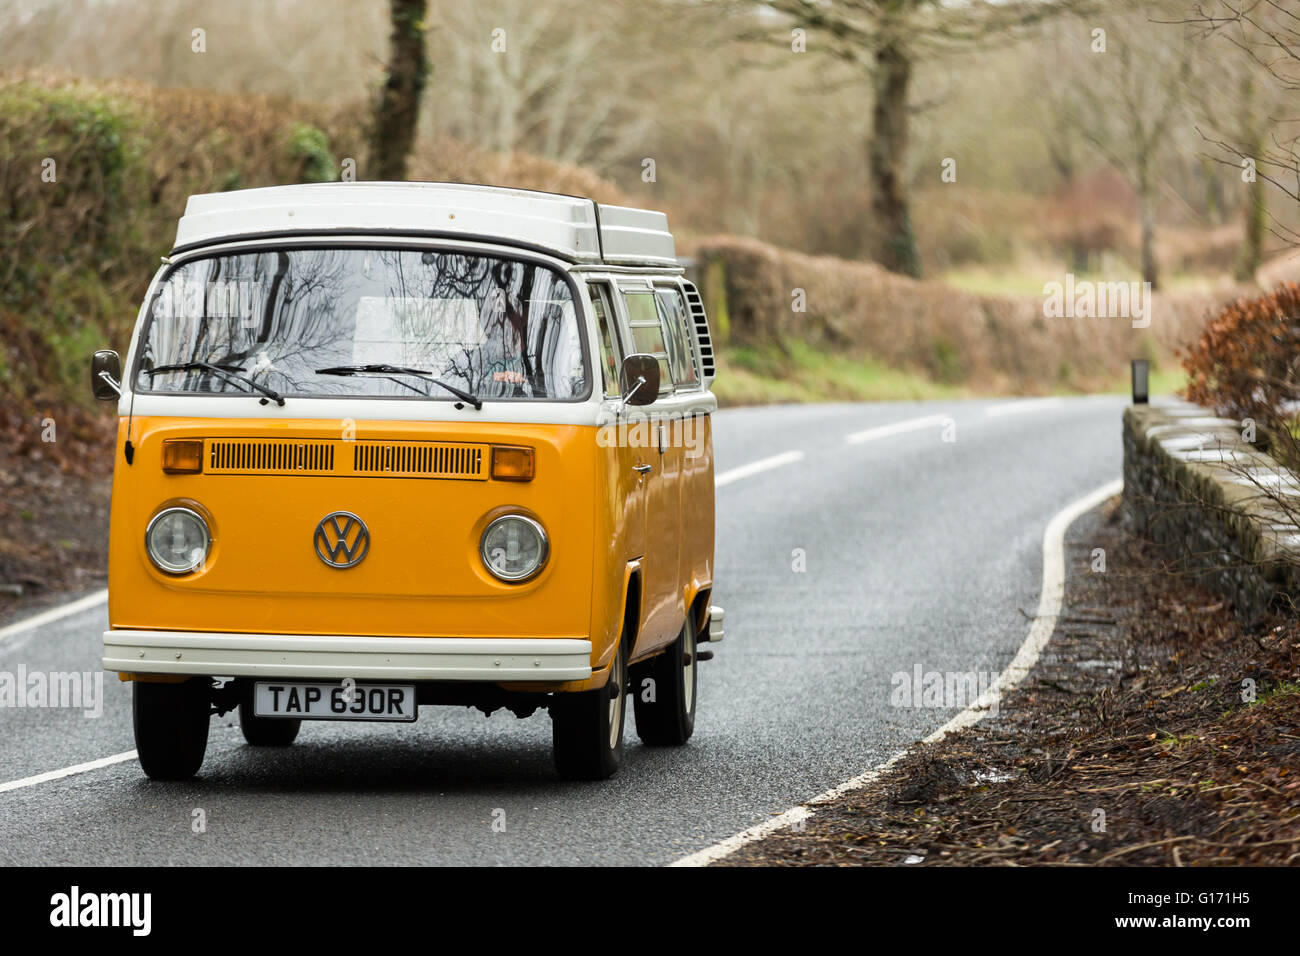 Yellow Vw Campervan High Resolution Stock Photography And Images Alamy